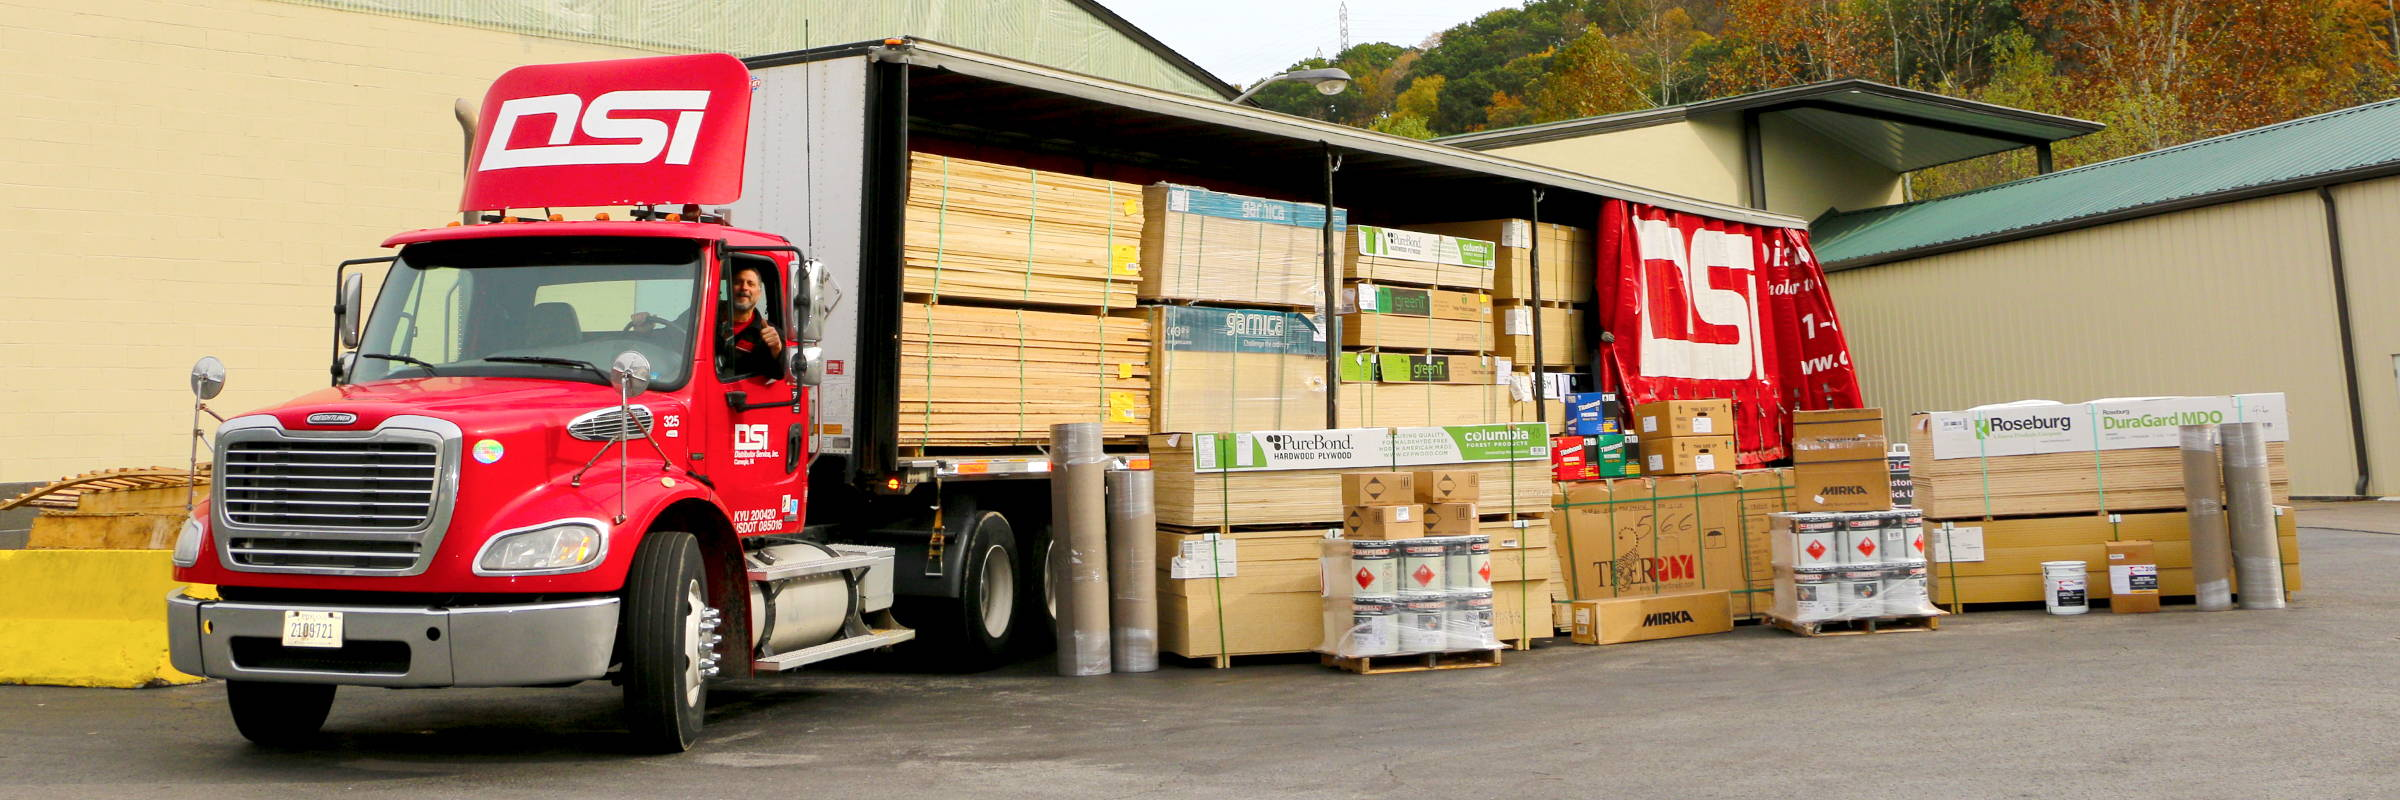 DSI Delivers Woodworking Supplies to Customer Shops